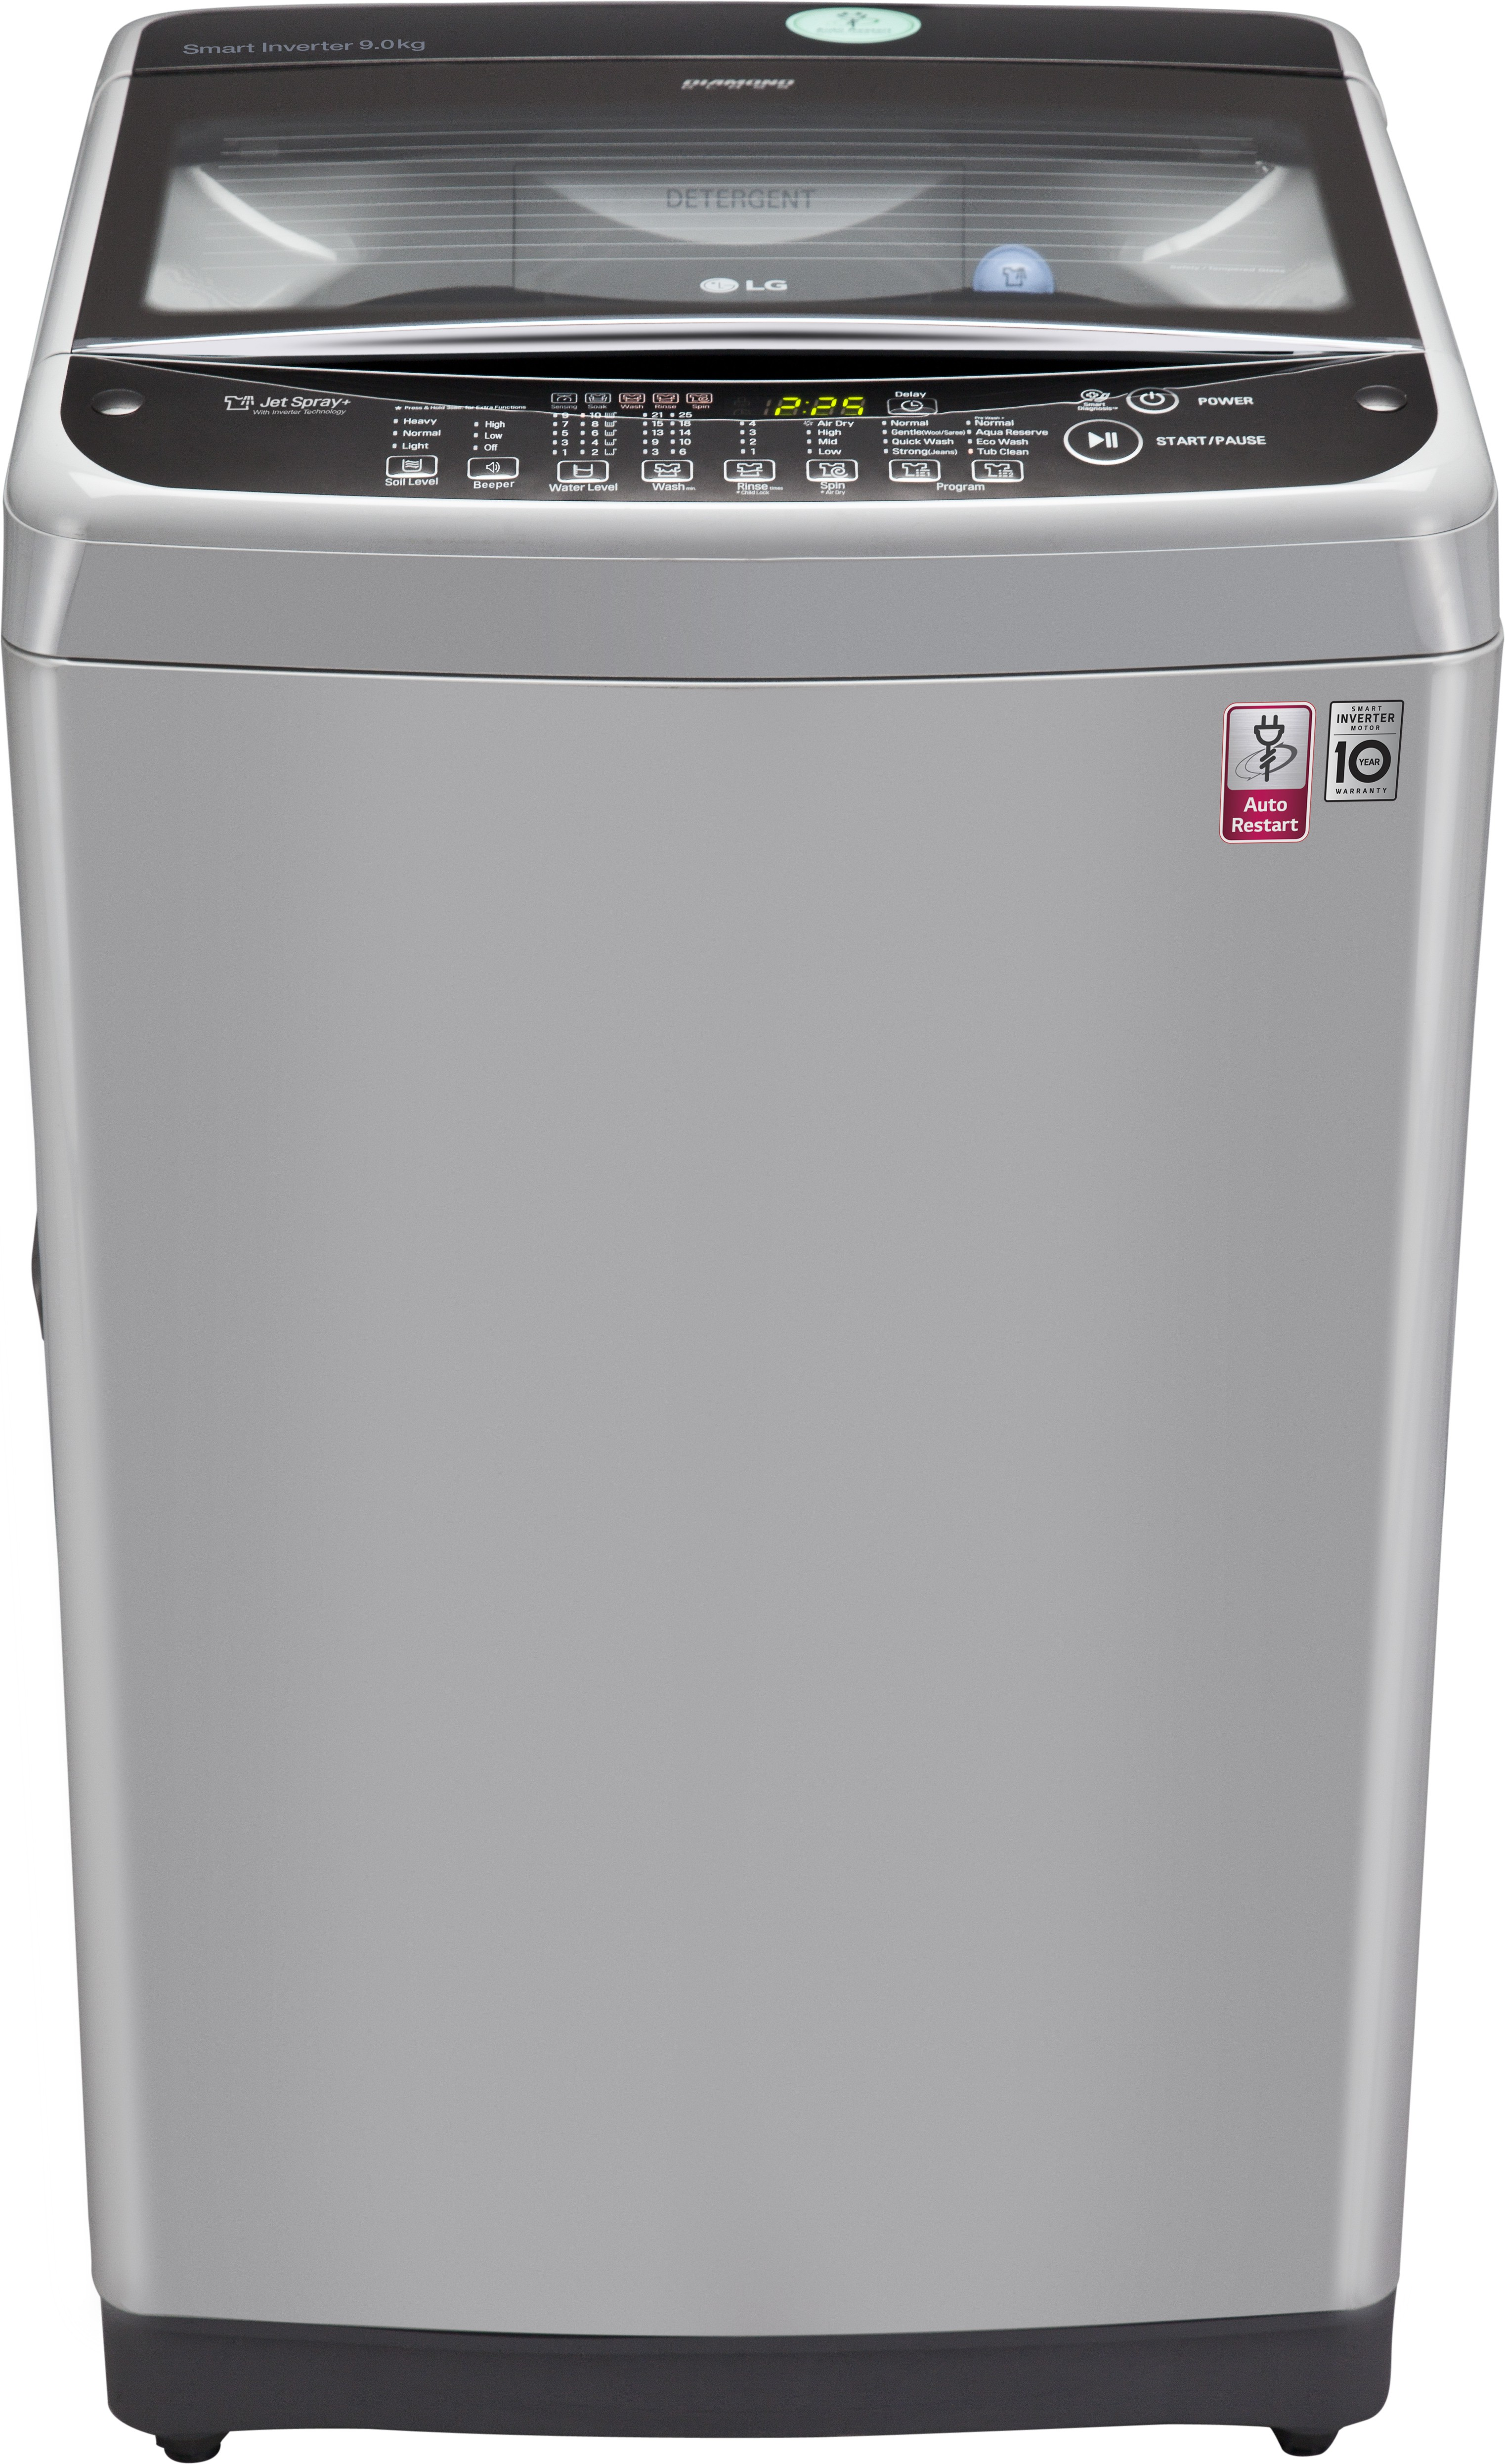 LG 9 kg Fully Automatic Top Load Washing Machine (T1077NEDL1) Image